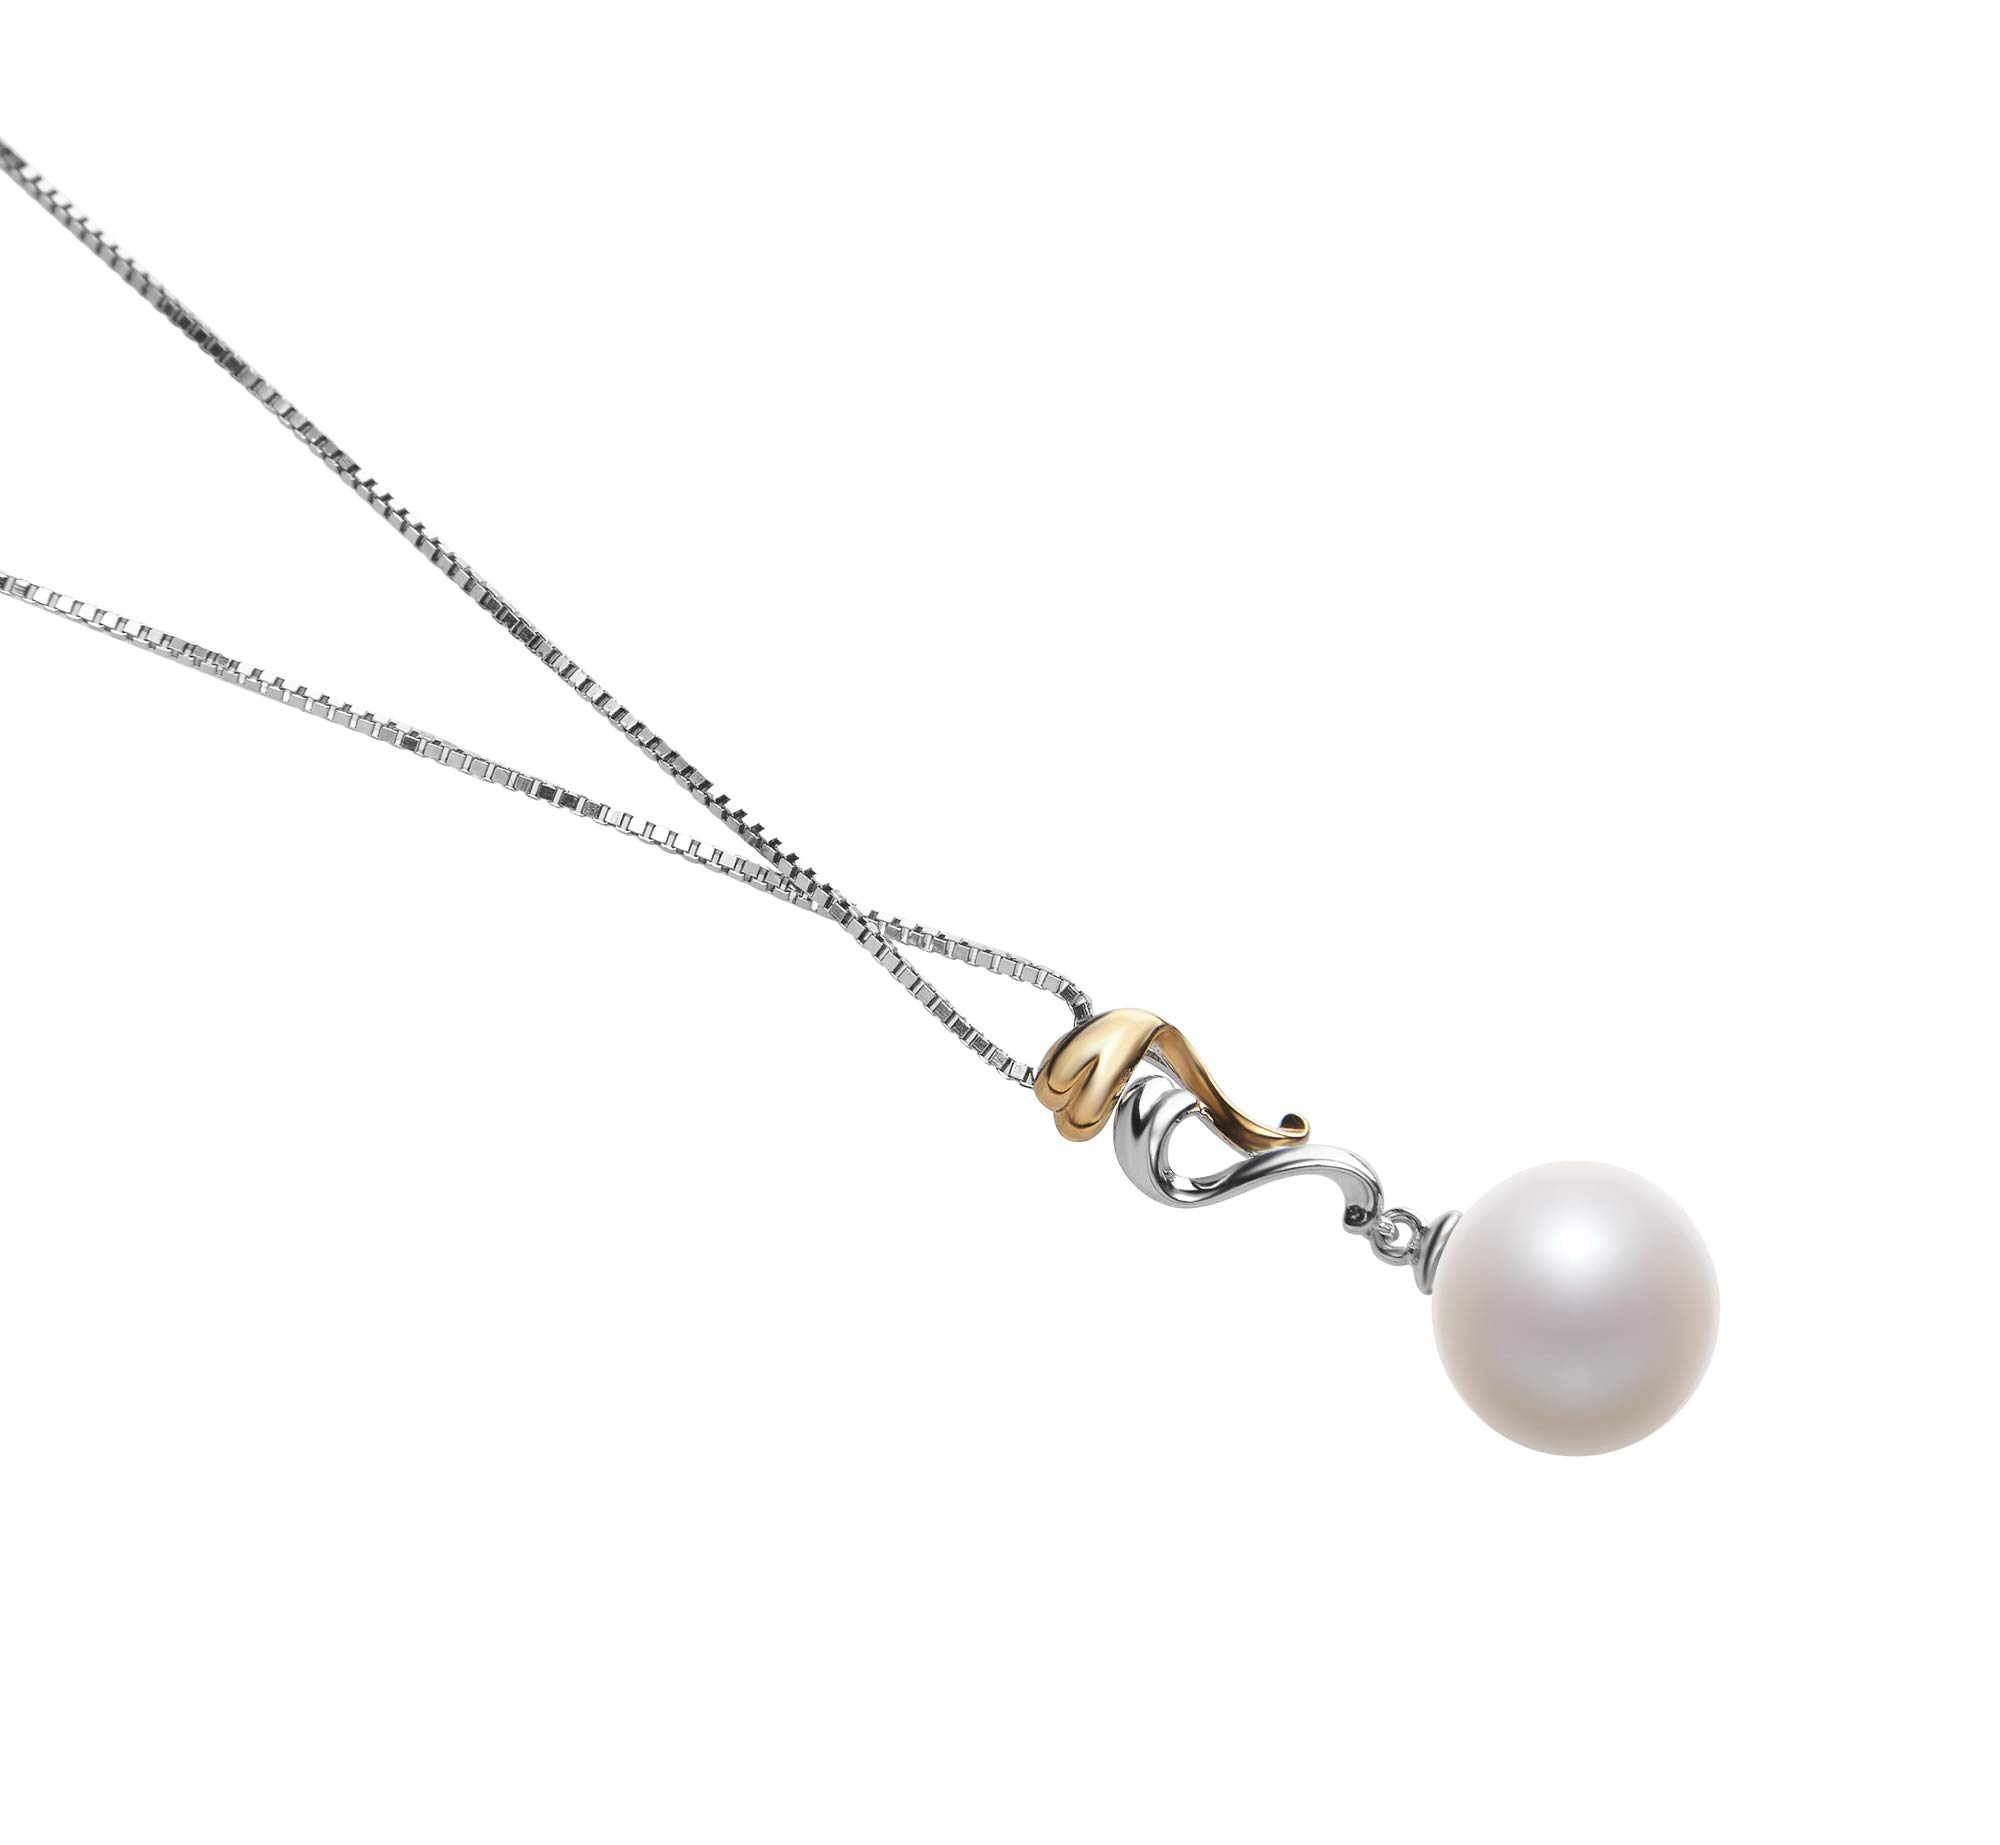 Brianna White 10-11mm AAAA Quality Freshwater 925 Sterling Silver Cultured Pearl Pendant For Women by PearlsOnly (Image #3)